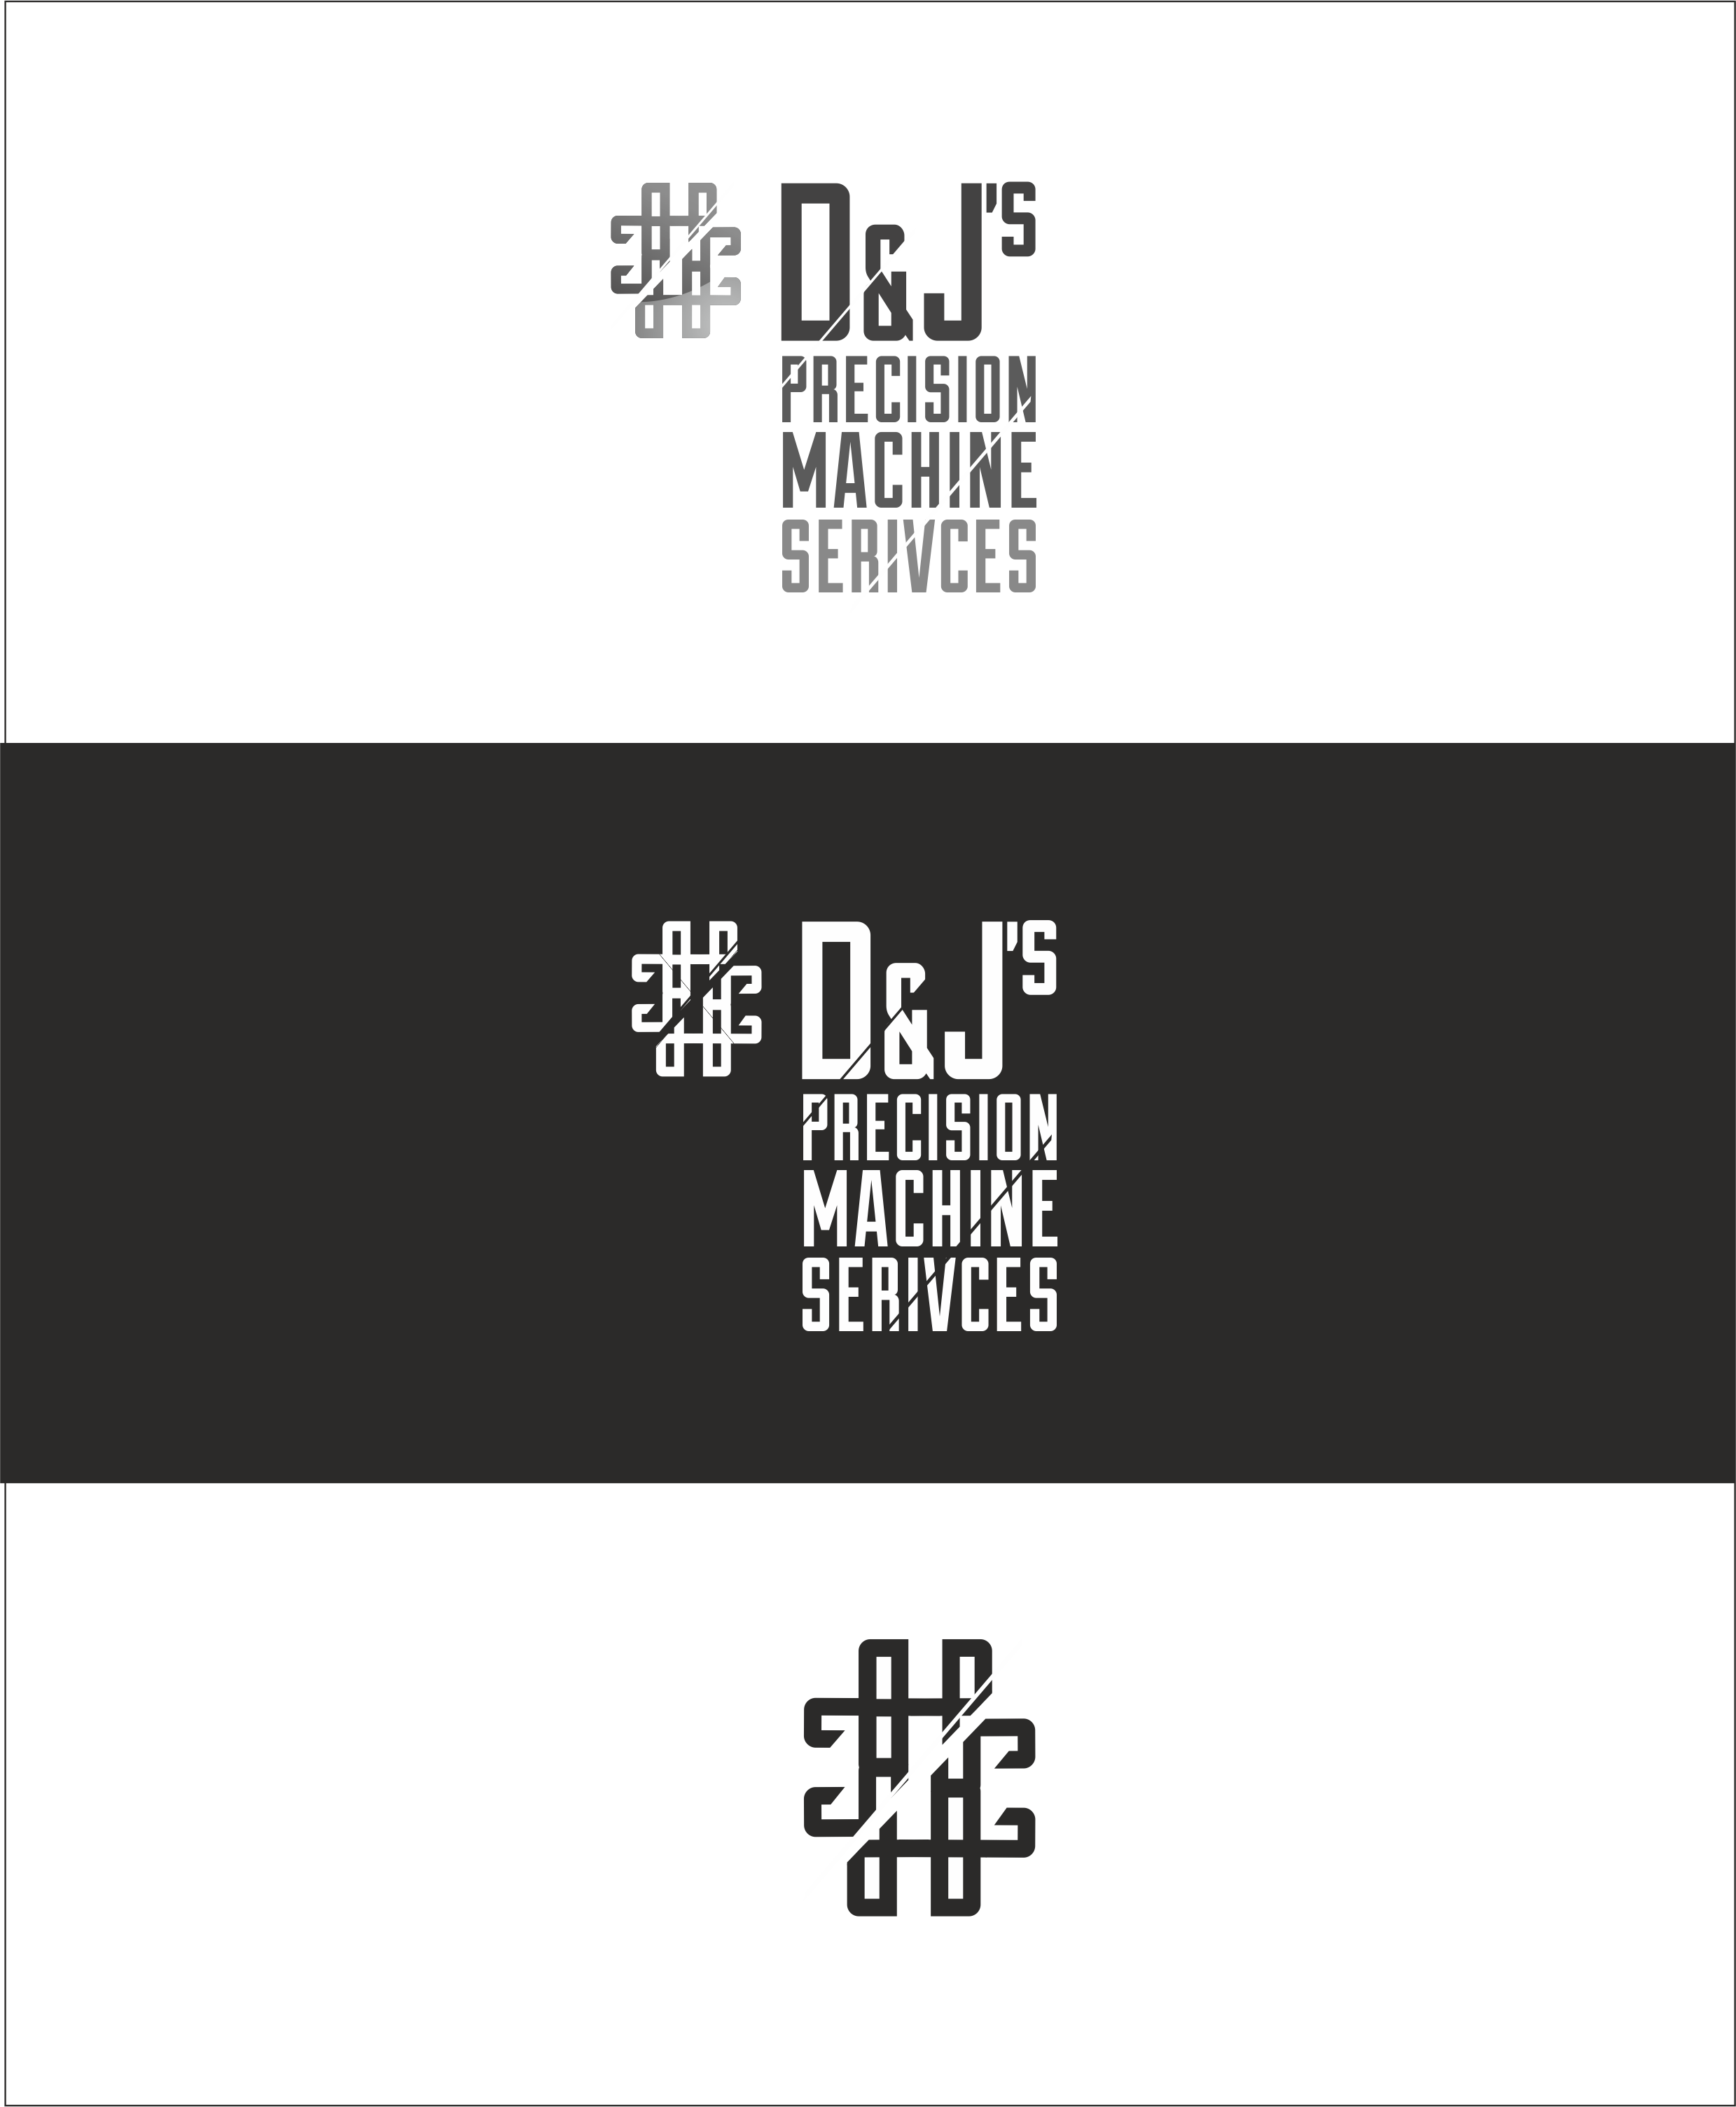 Logo Design by Galina Spirina - Entry No. 22 in the Logo Design Contest Creative Logo Design for D & J's Precision Machine Services.